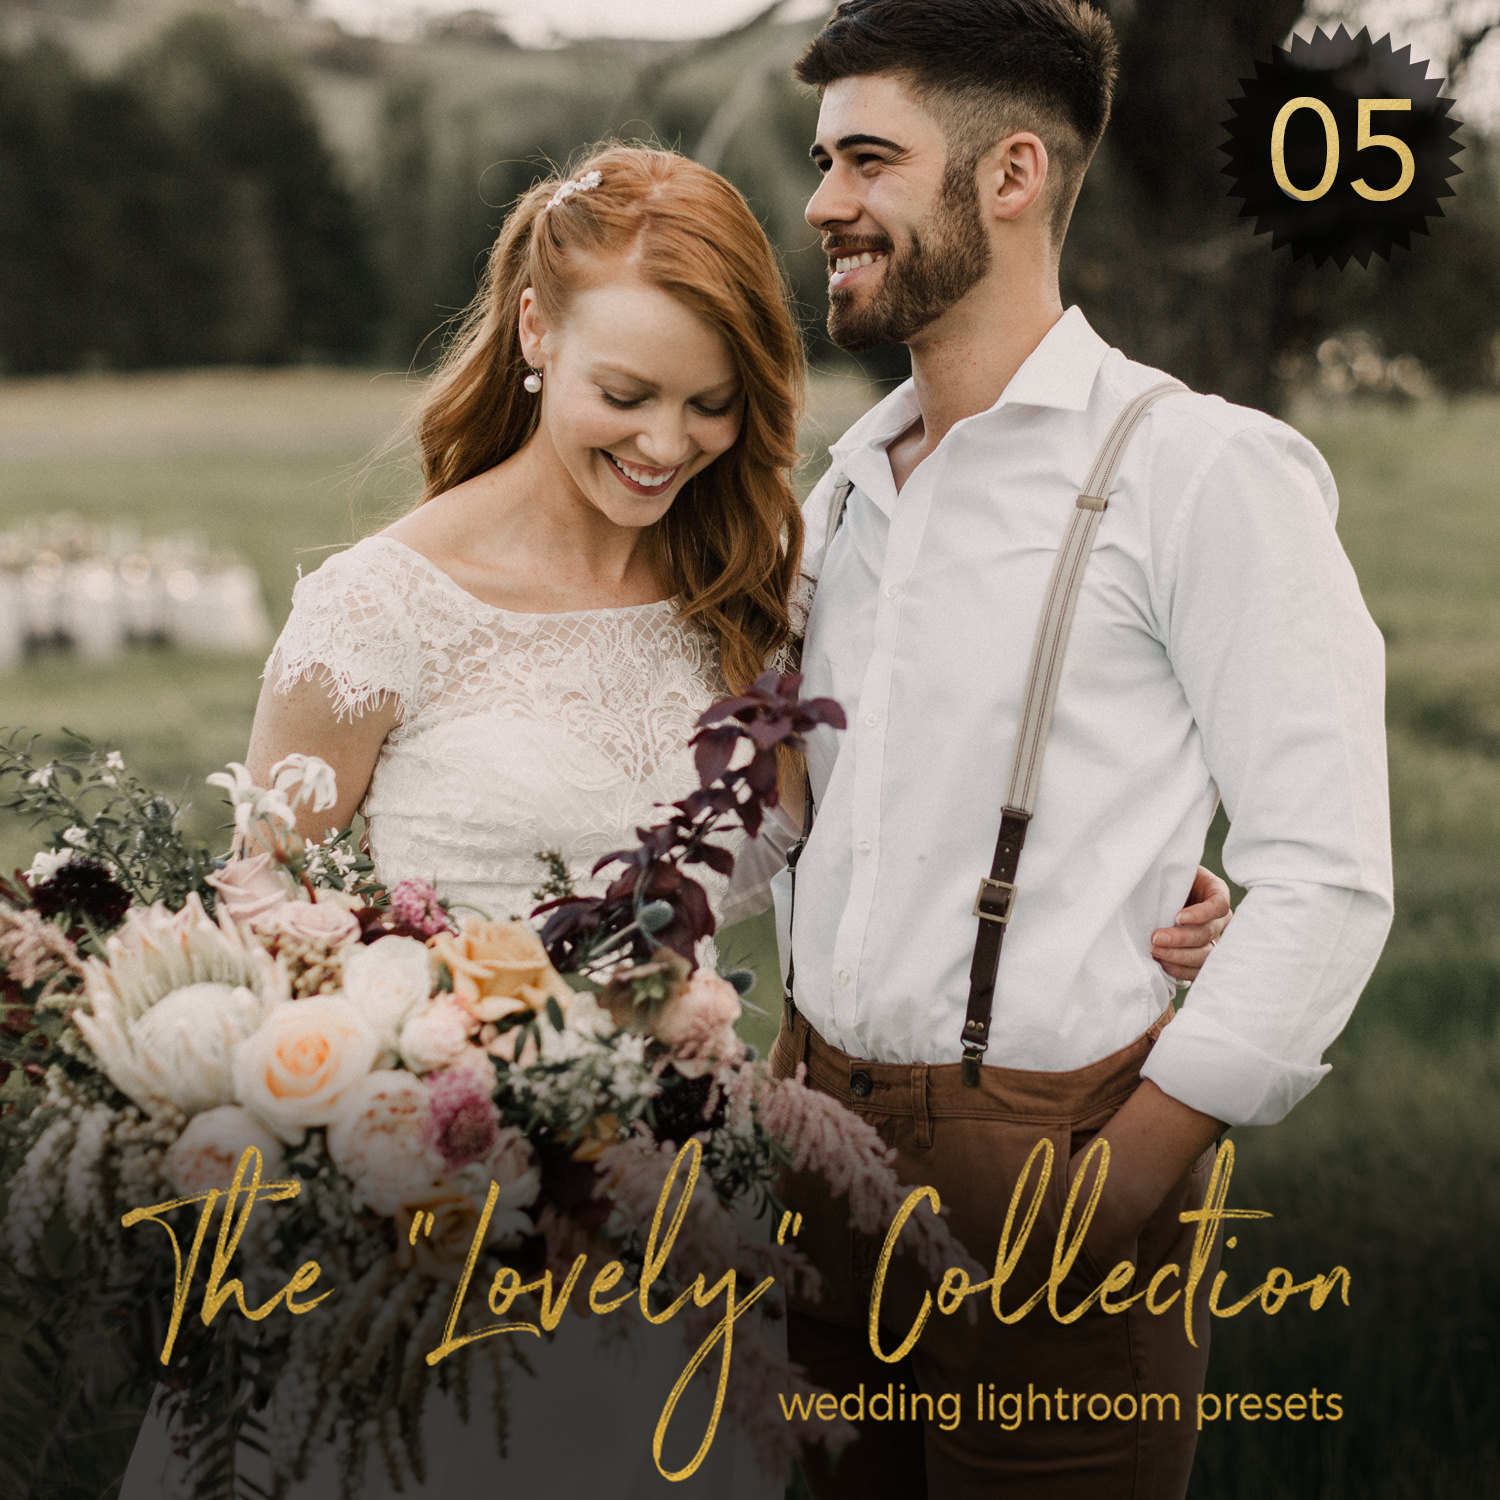 Lightroom Presets Wedding Vsco Inspired Adobe Filters Acr